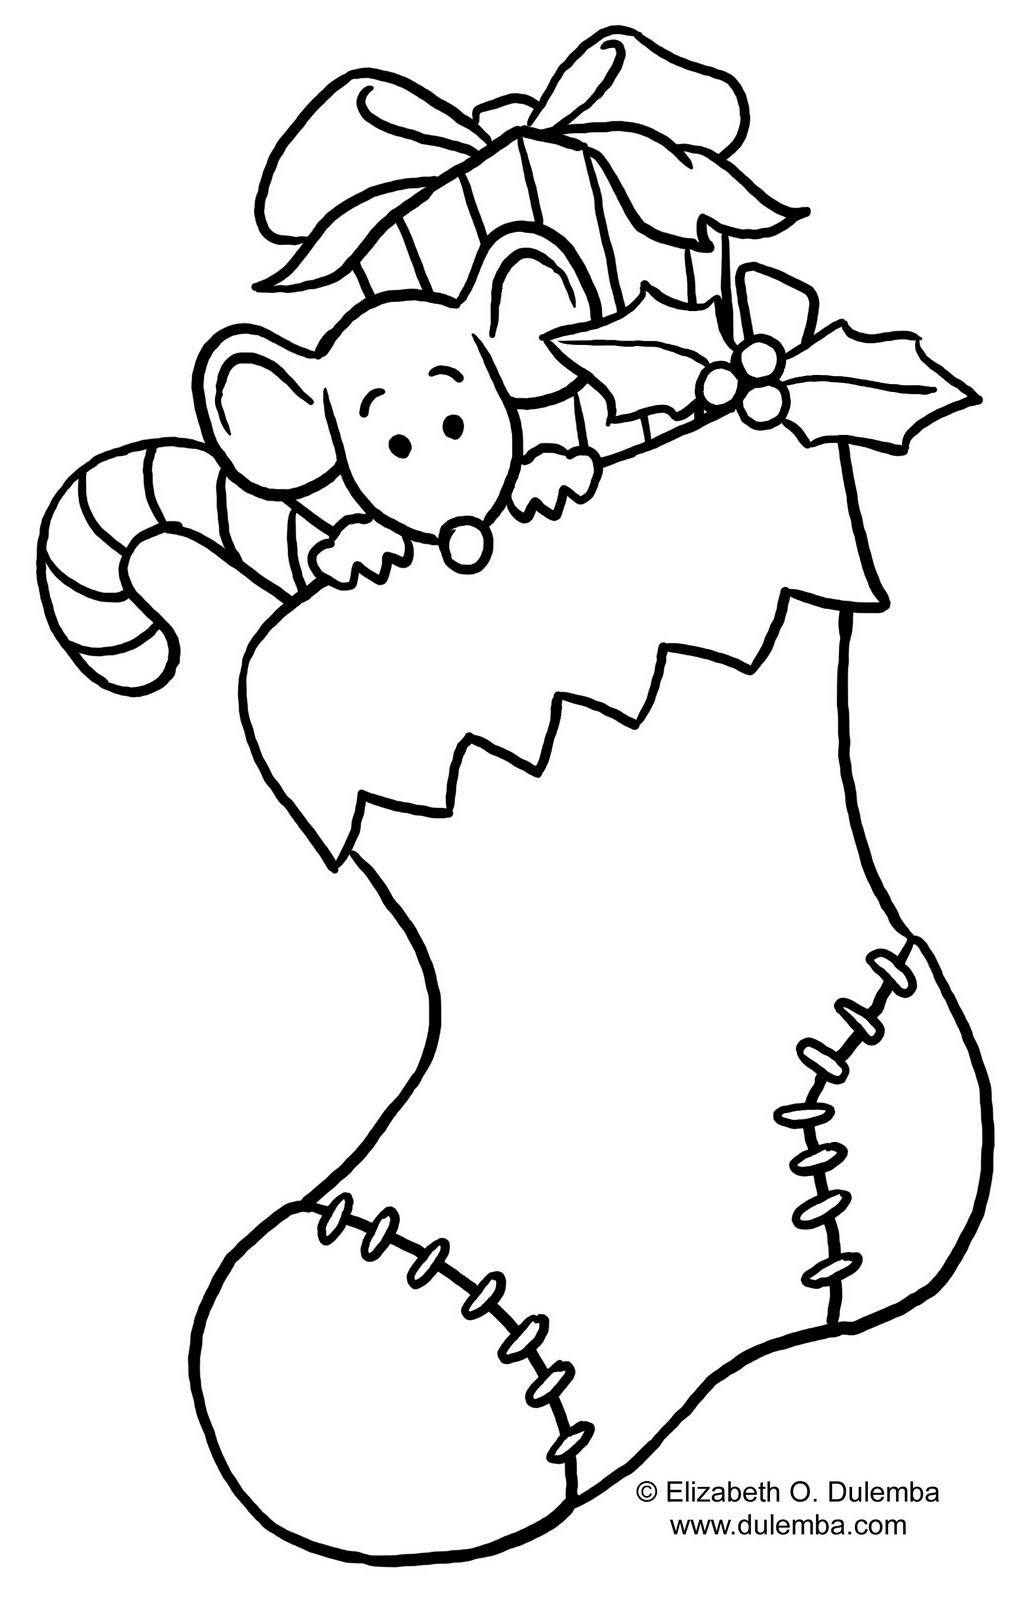 coloriages noel | Christmas Coloring Pages 2010 | coloring pages ...